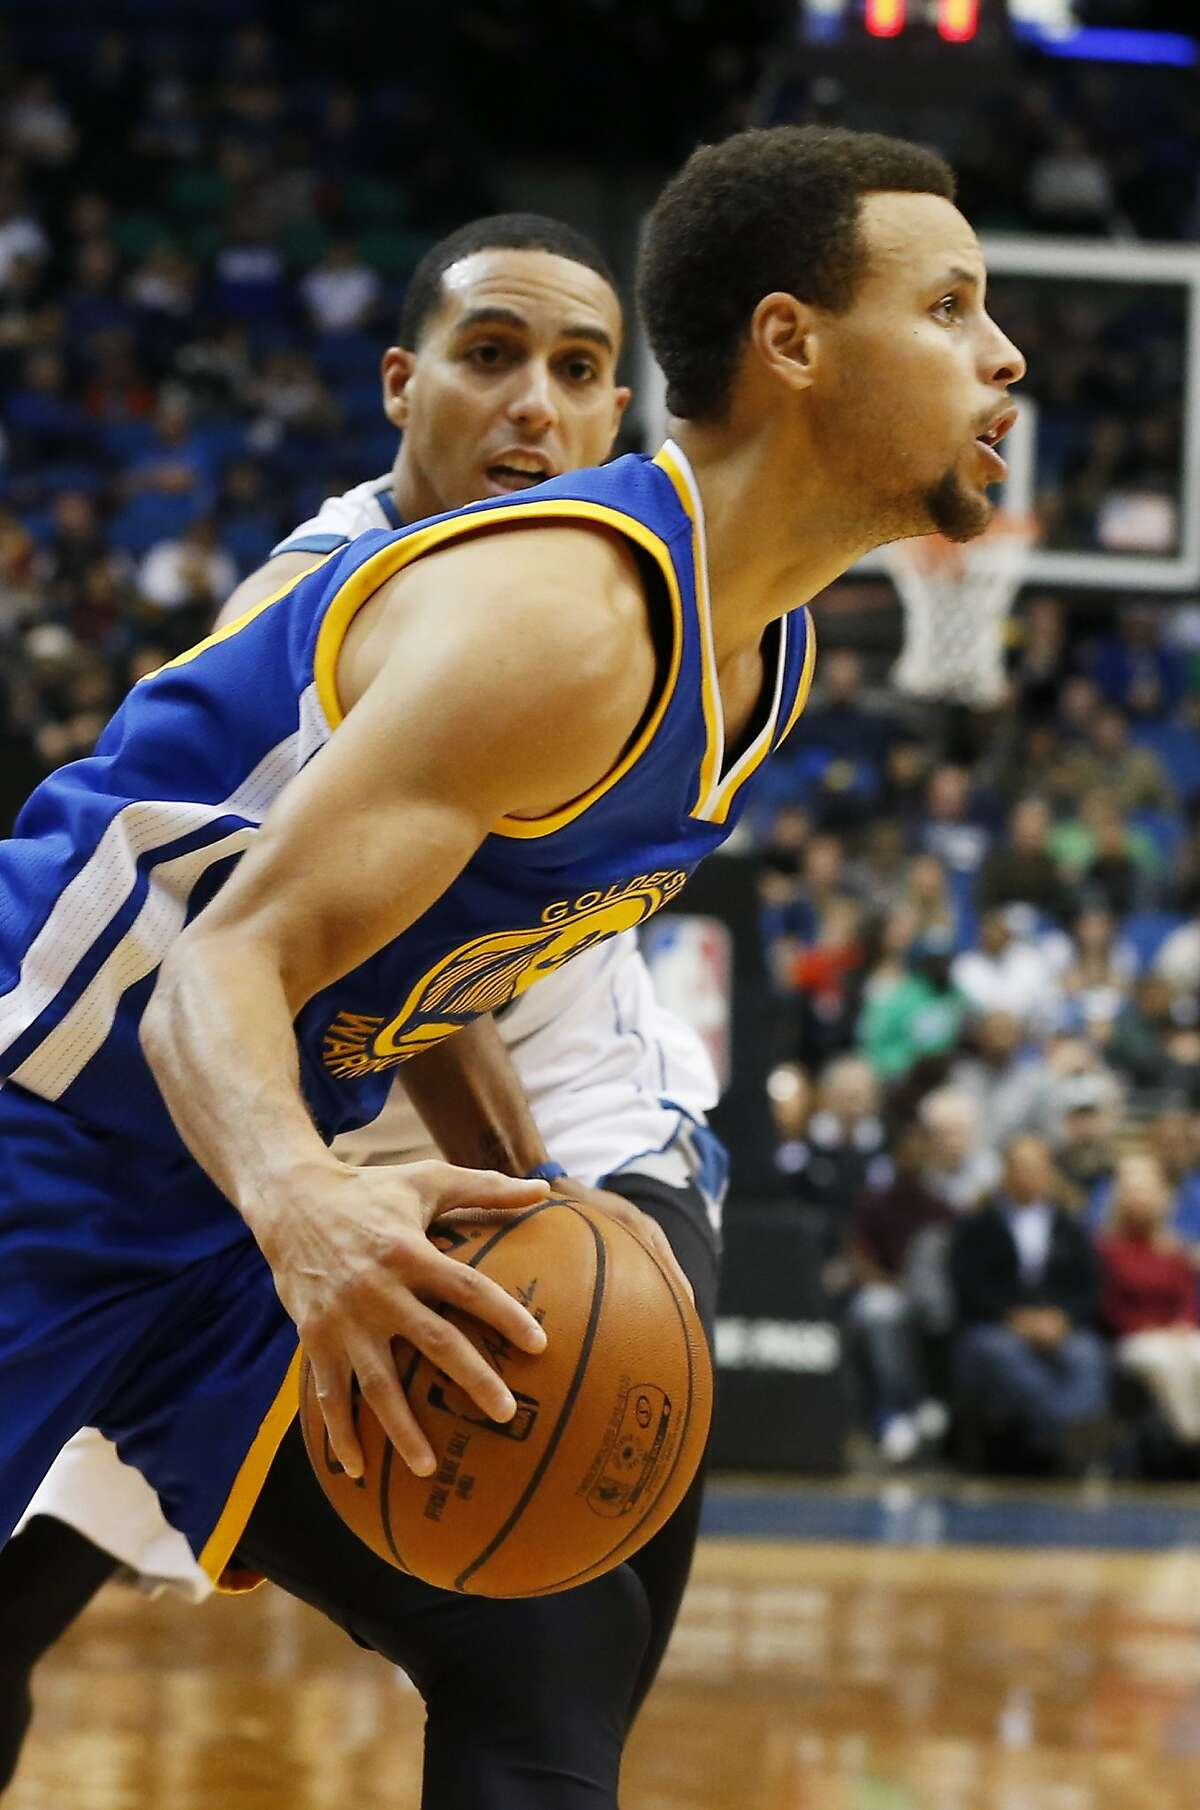 Golden State Warriors' Stephen Curry drives past Minnesota Timberwolves' Kevin Martin during the second half of an NBA basketball game, Thursday, Nov. 12, 2015, in Minneapolis. The Warriors won 129-116. Curry scored 46 points. (AP Photo/Jim Mone)